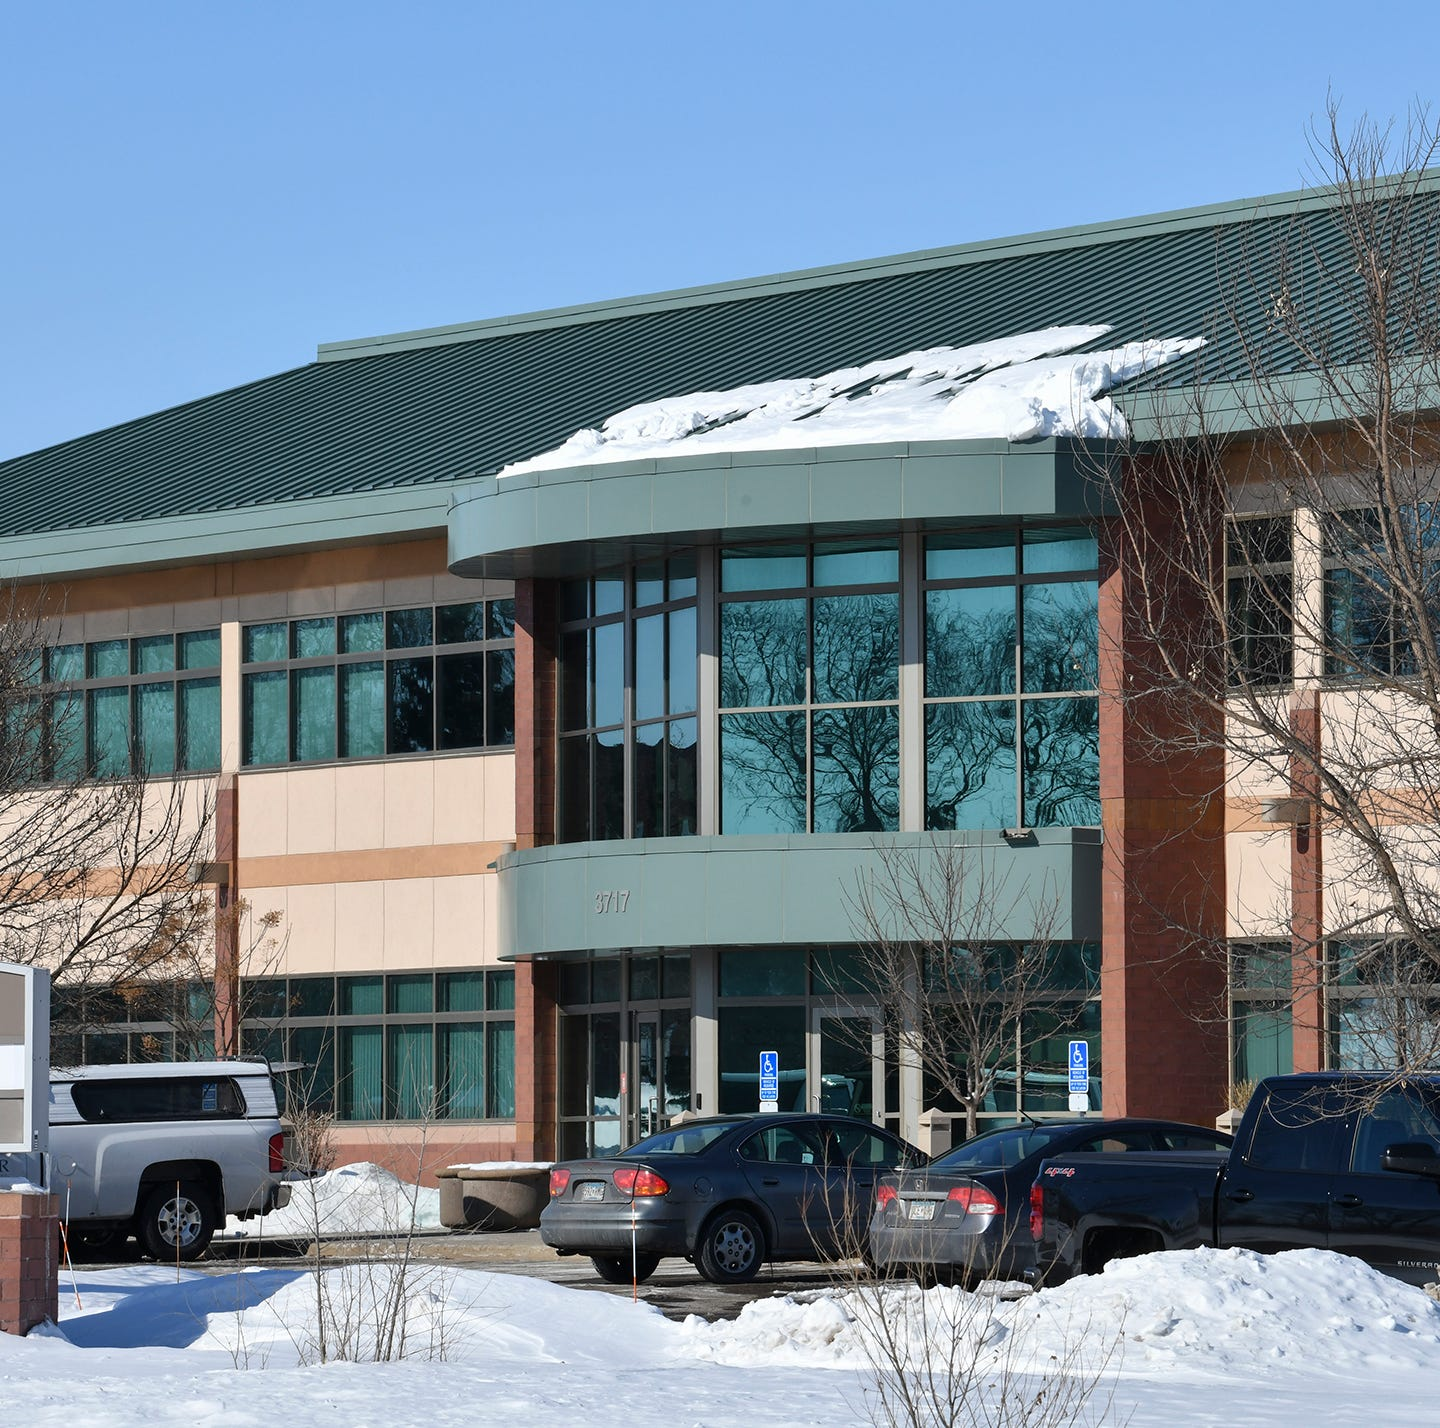 Software company riteSOFT is moving its offices to St. Cloud